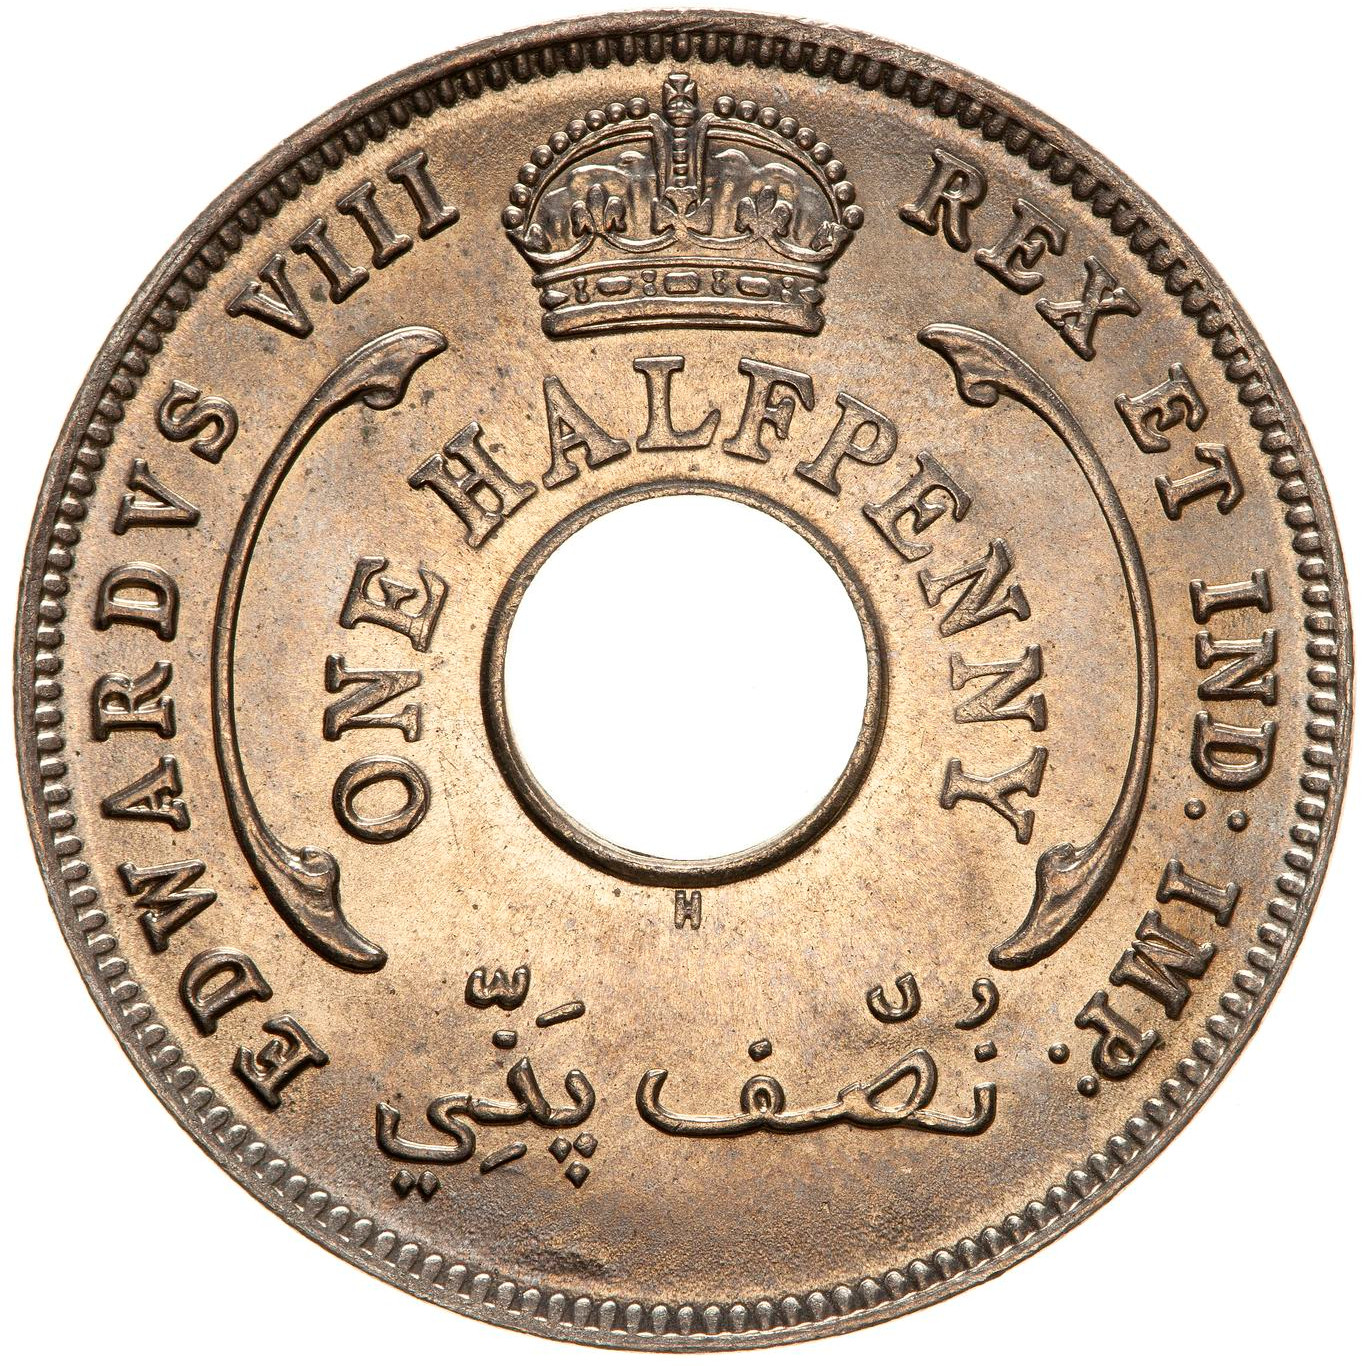 Halfpenny 1936 Edward VIII: Photo Coin - 1/2 Penny, British West Africa, 1936